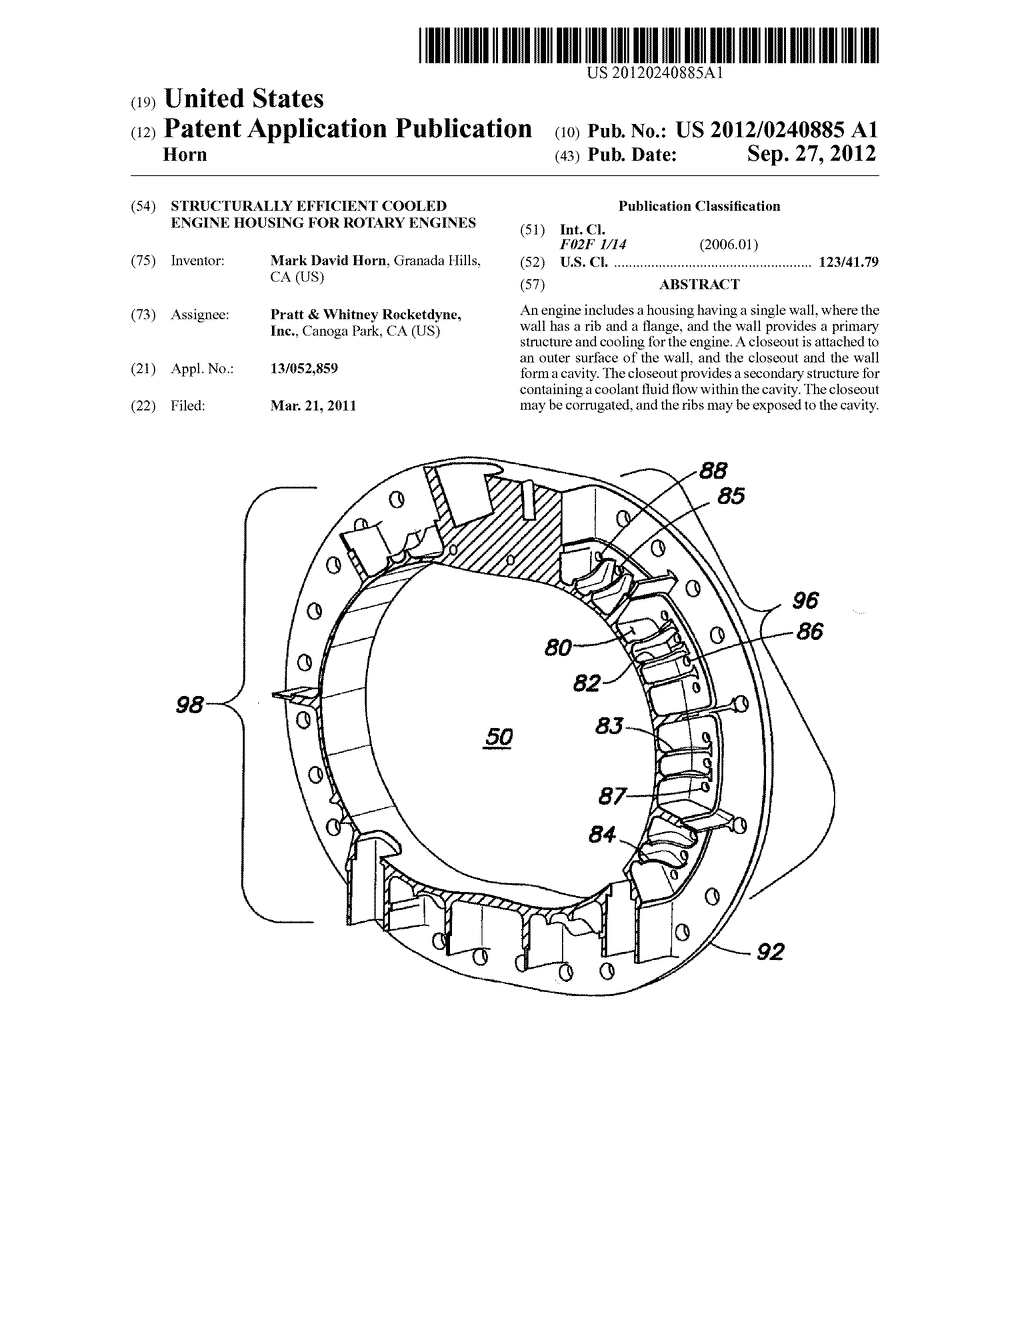 STRUCTURALLY EFFICIENT COOLED ENGINE HOUSING FOR ROTARY ENGINES - diagram,  schematic, and image 01